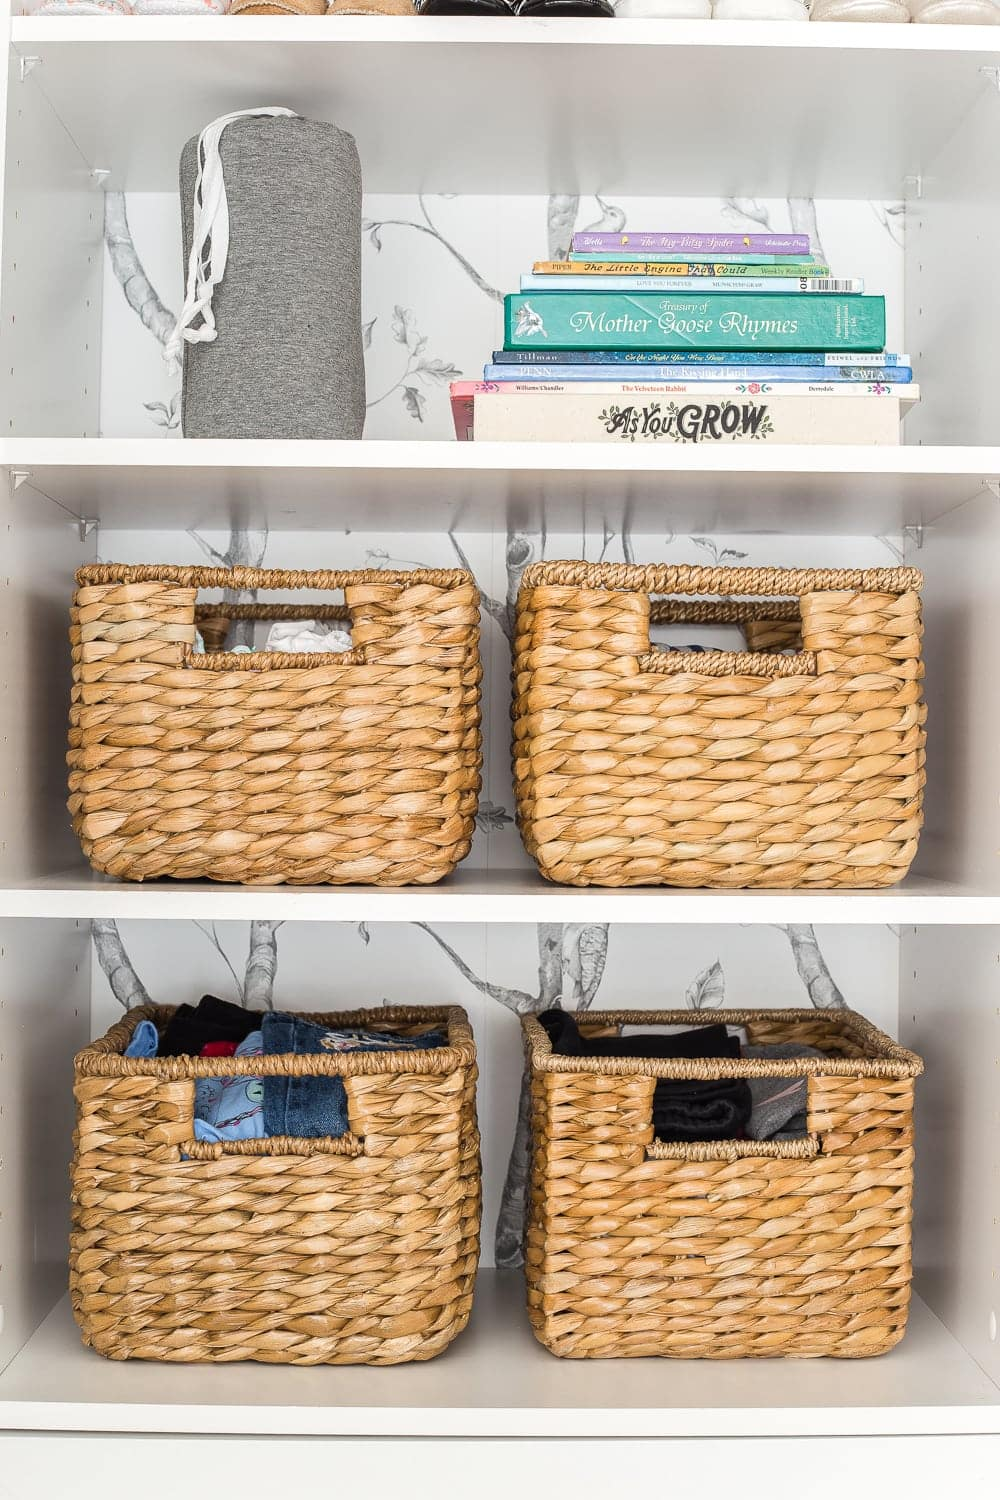 Nursery Organization | Closet shelves to hold next phase size clothing and baby books for story time.